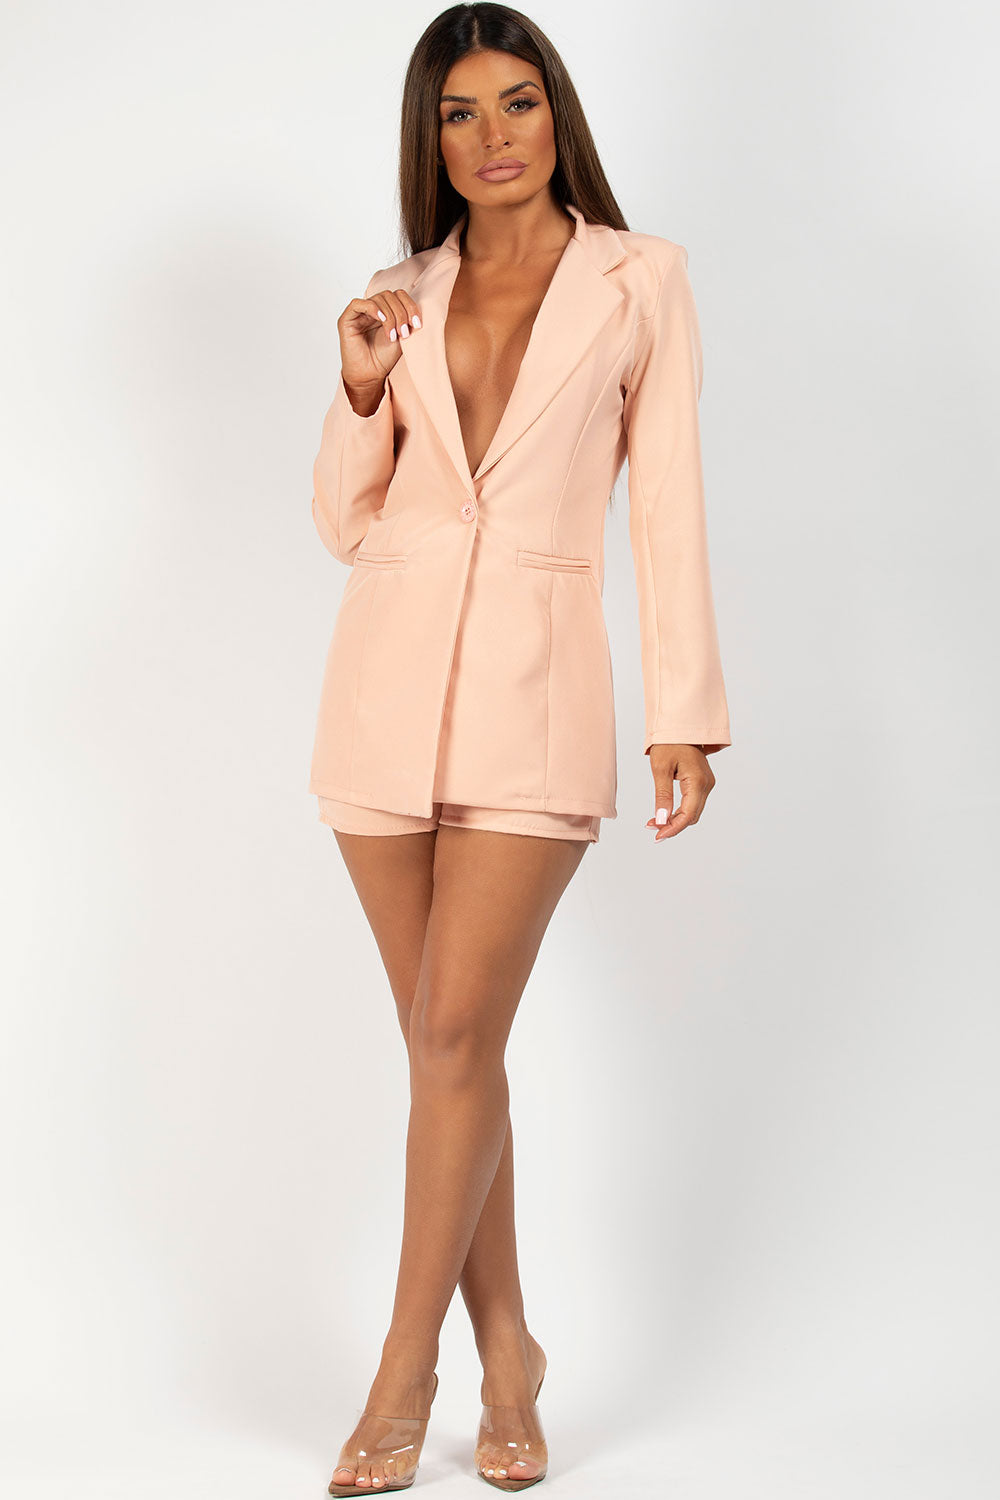 nude blazer and cc buckle shorts co ord set